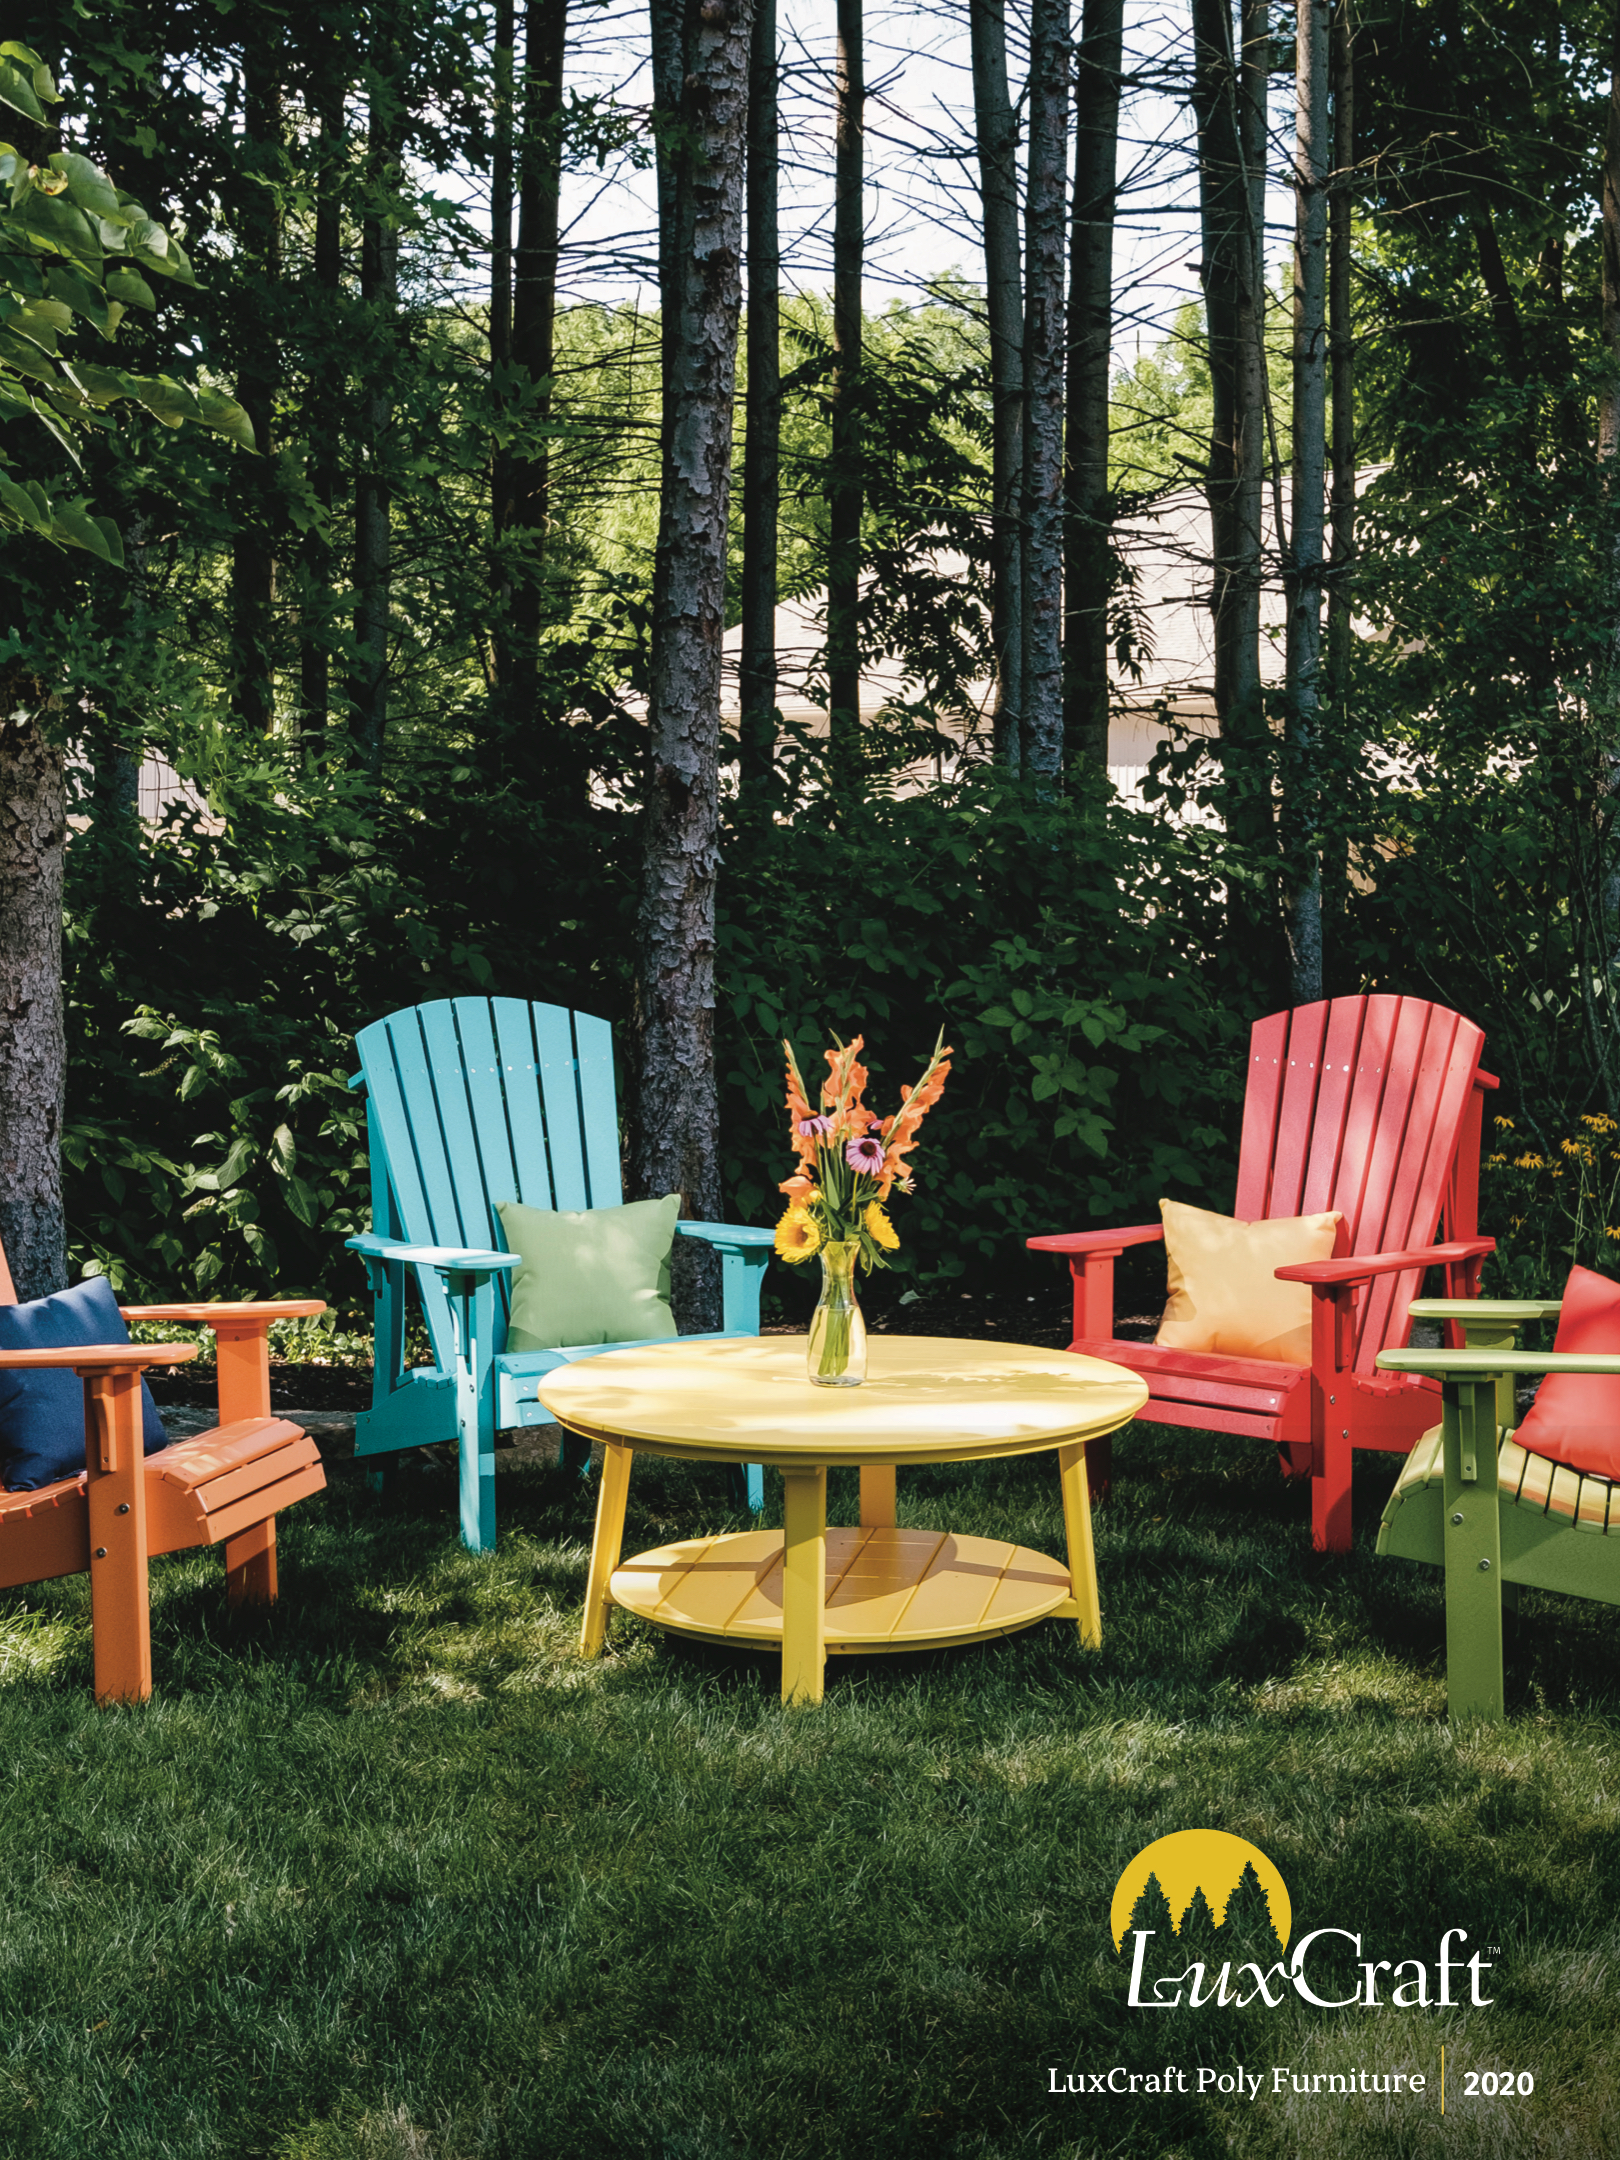 Our Online Catalogs Swiss Country Lawn Crafts Sugarcreek Ohio